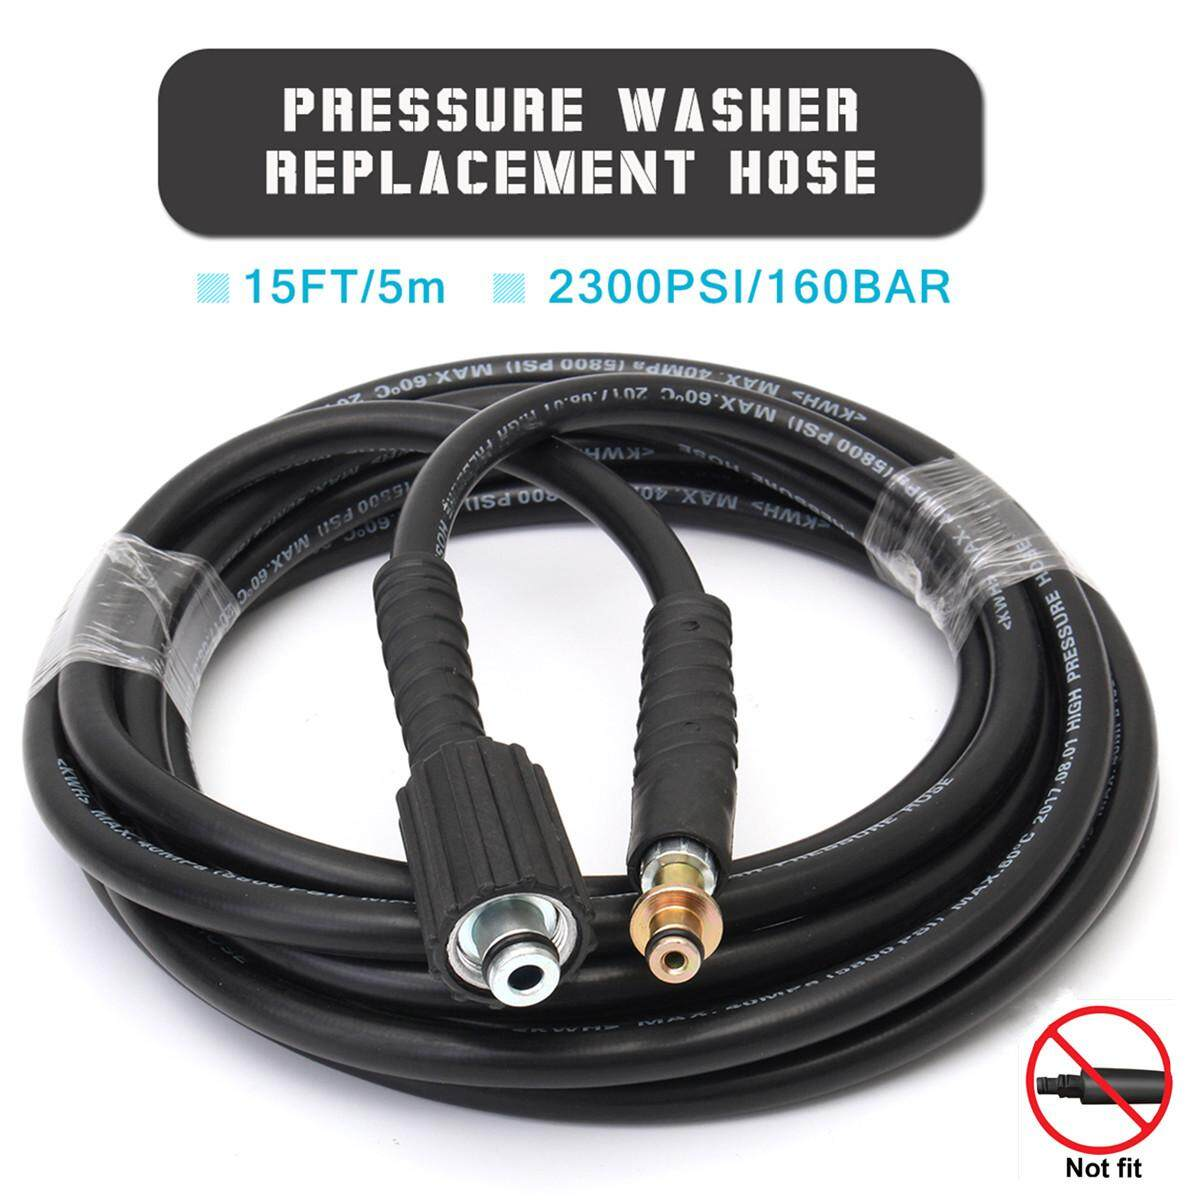 15FT/5m 2300PSI/160BAR Pressure Washer Replacement Cleaner Hose For Karcher K2 - intl